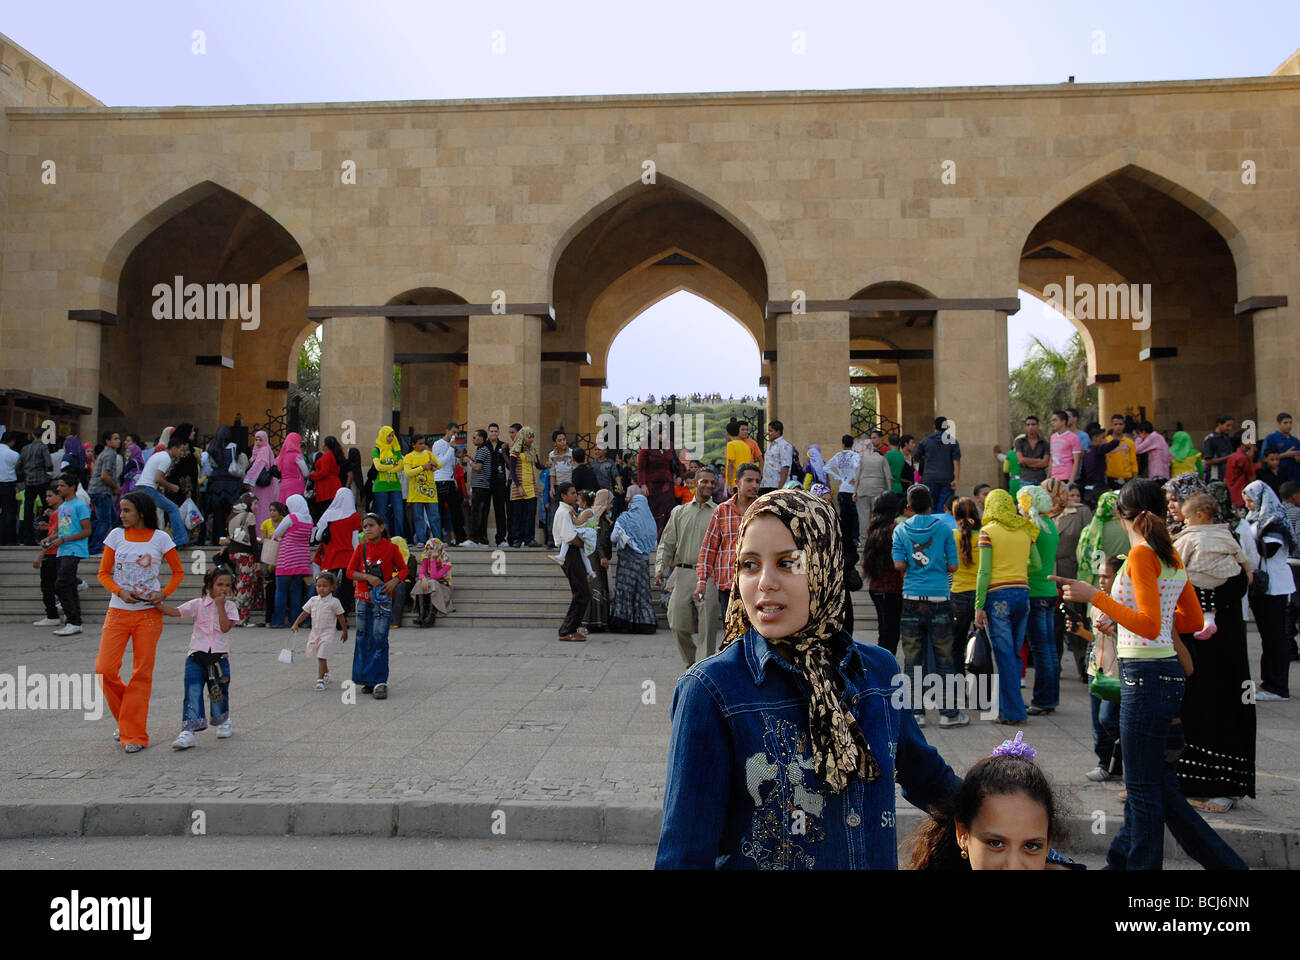 Azhar Park is always a favourite place for Egyptians to go out. During Eid El Fitr at the end of Ramadan it is especially - Stock Image